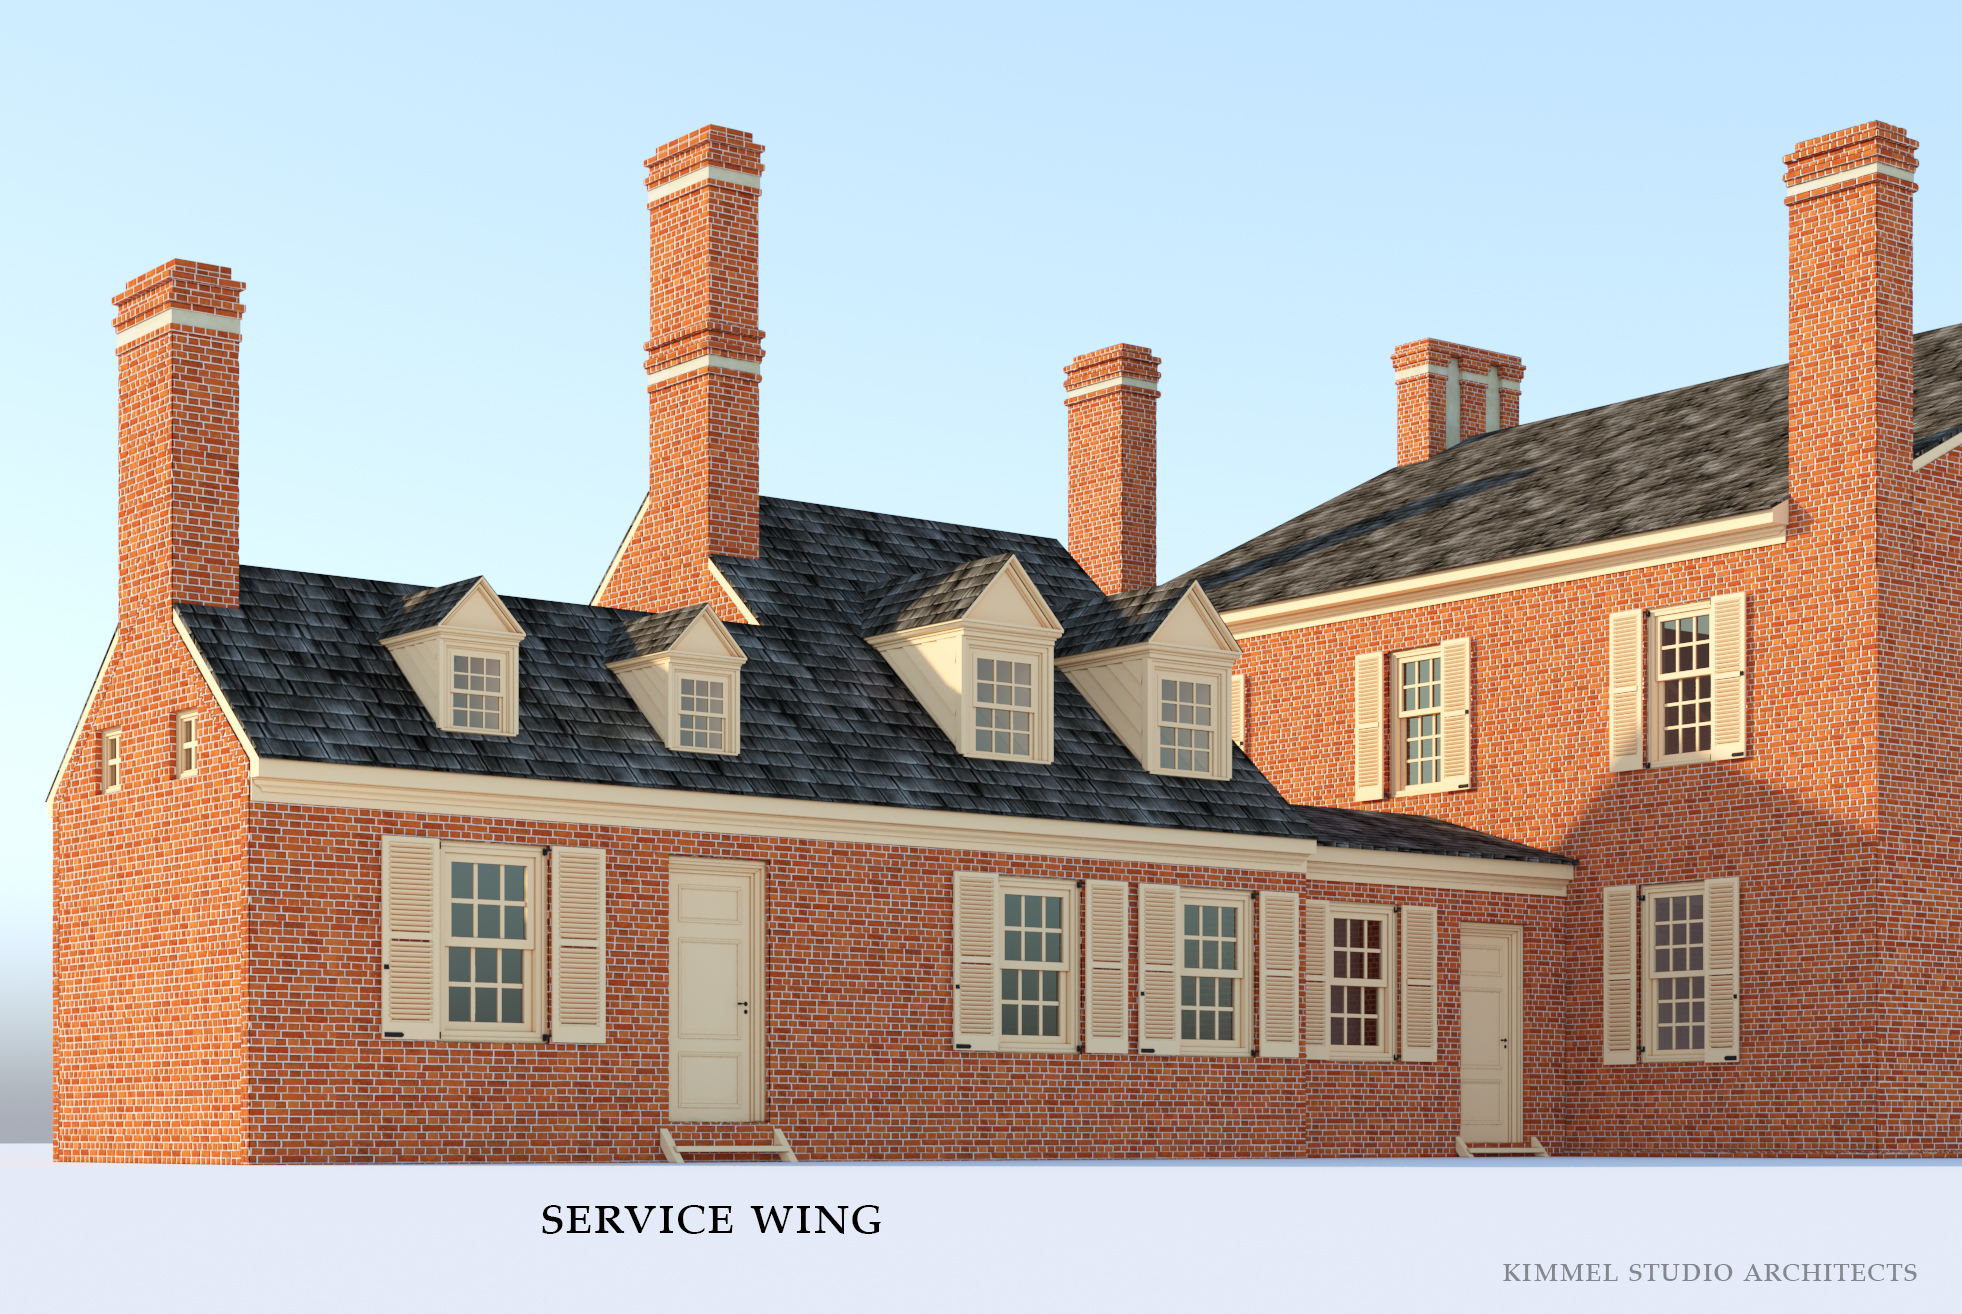 Conceptual illustration of the 1784 cloverfields service wing. It consists of a kitchen, service building, and hyphen. / Design and rendering: Kimmel Studio Architects.